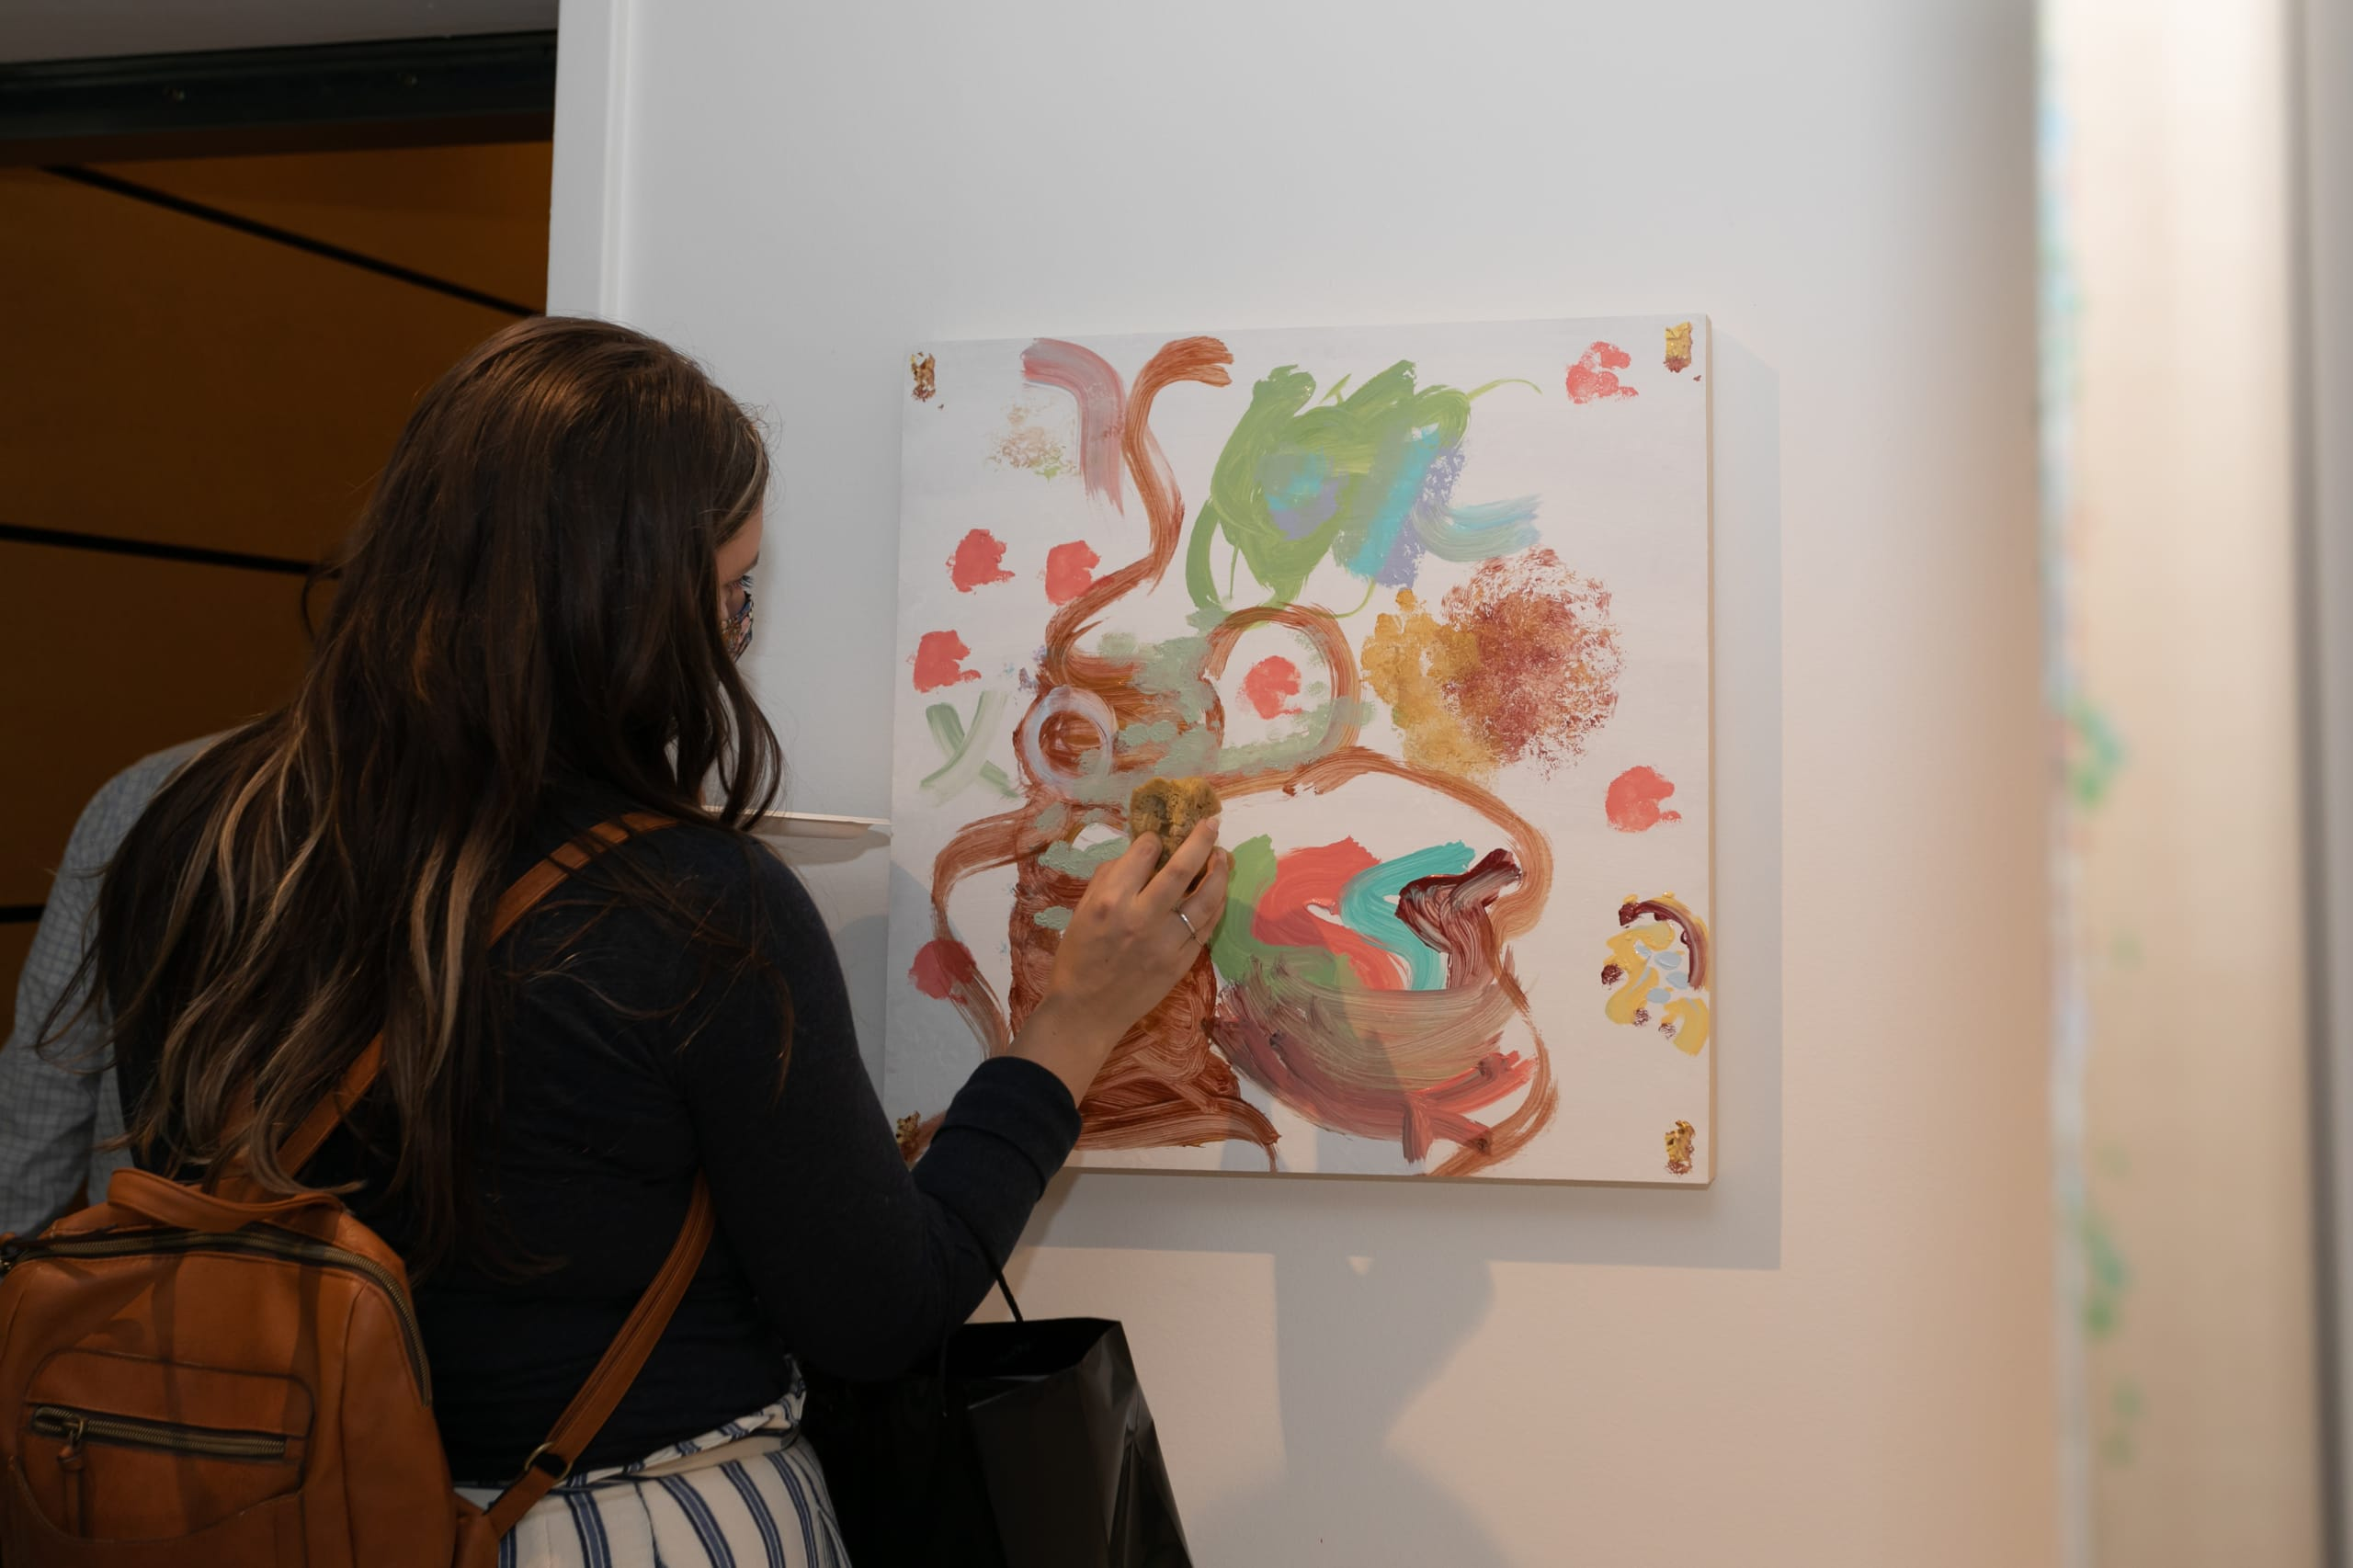 coral sponge painting completed by attendees in the eggersmann chicago showroom at the rndd gallery walk fall 2021